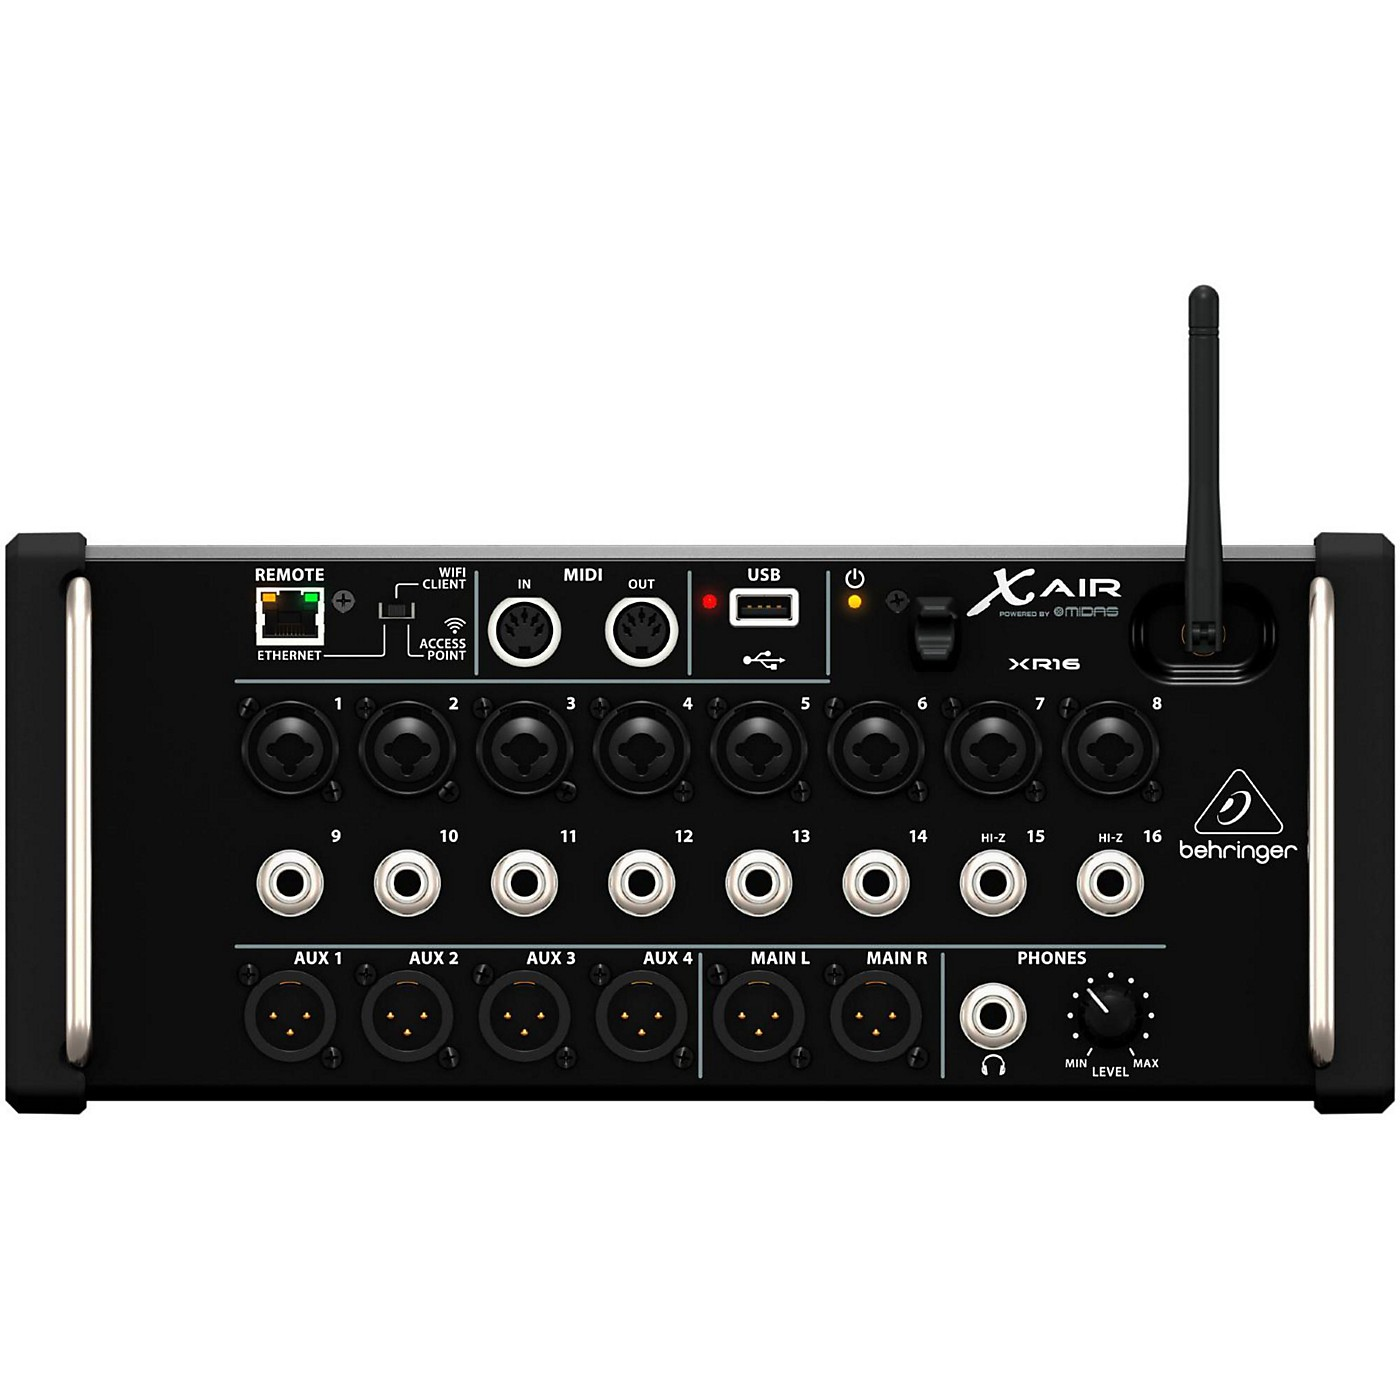 Behringer X AIR XR16 Digital Rackmount Mixer thumbnail